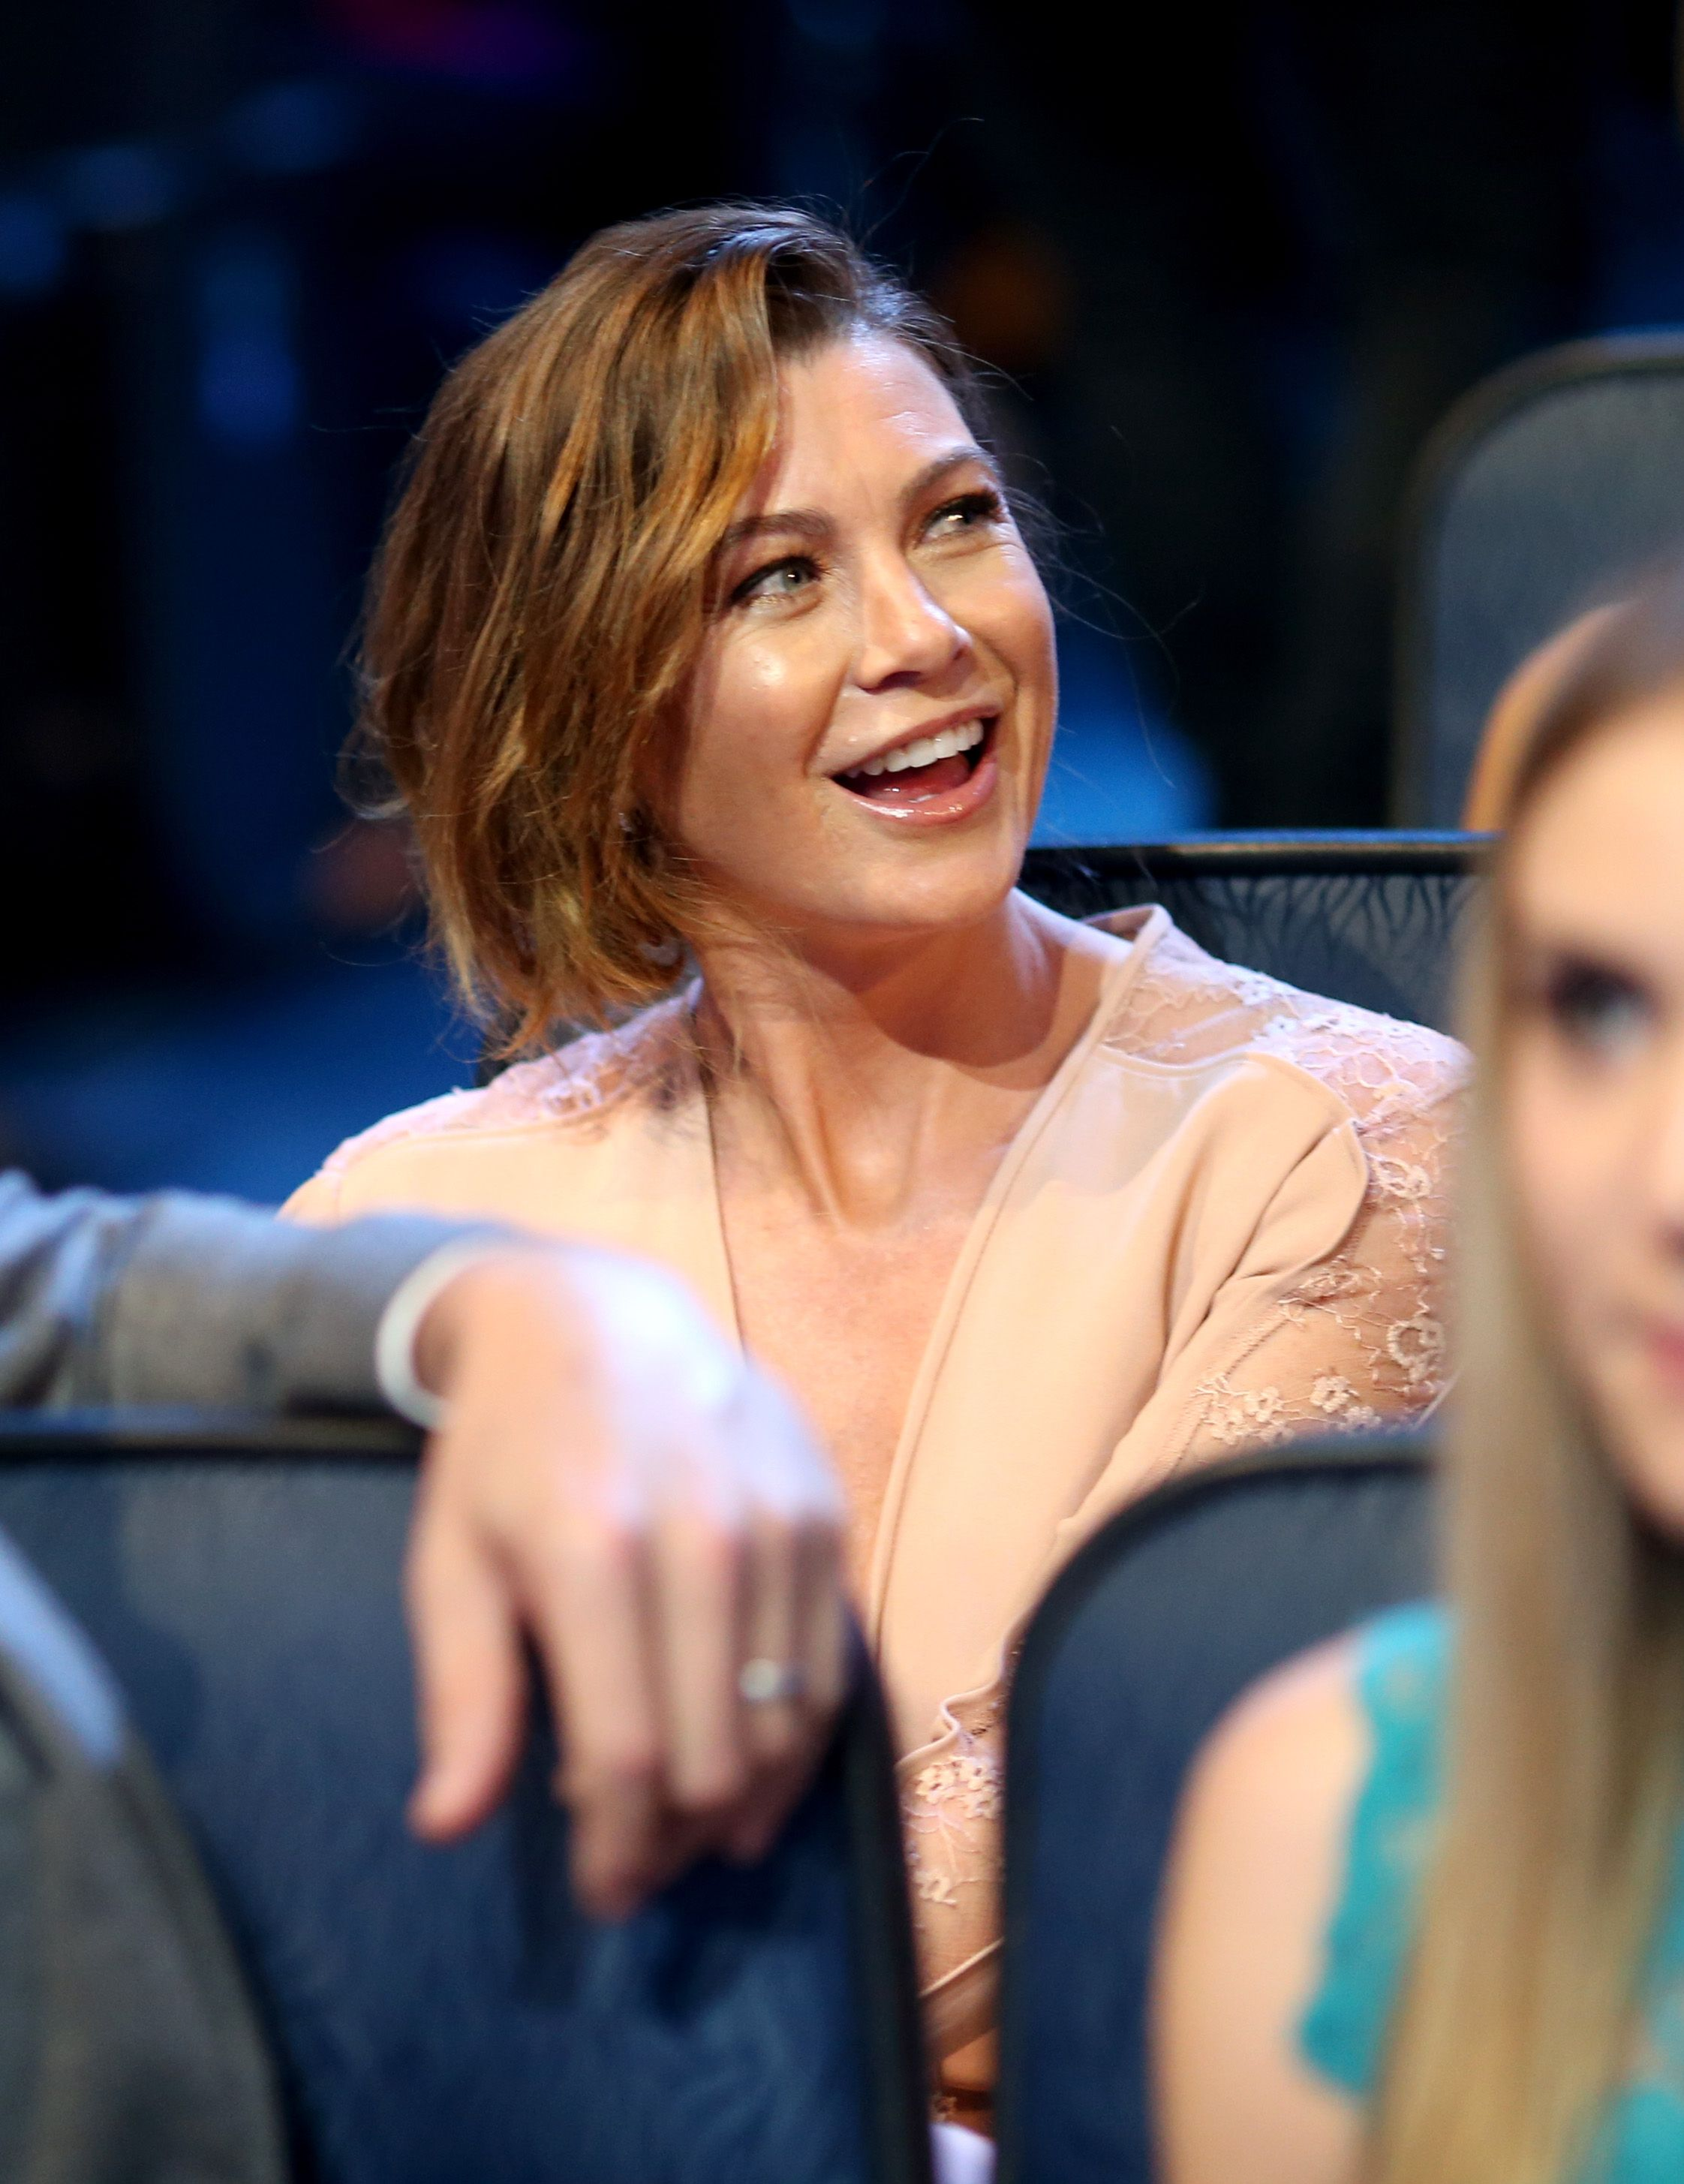 Ellen Pompeo attendsthe 41st Annual People's Choice Awardson January 7, 2015, in Los Angeles, California | Photo: Christopher Polk/Getty Images